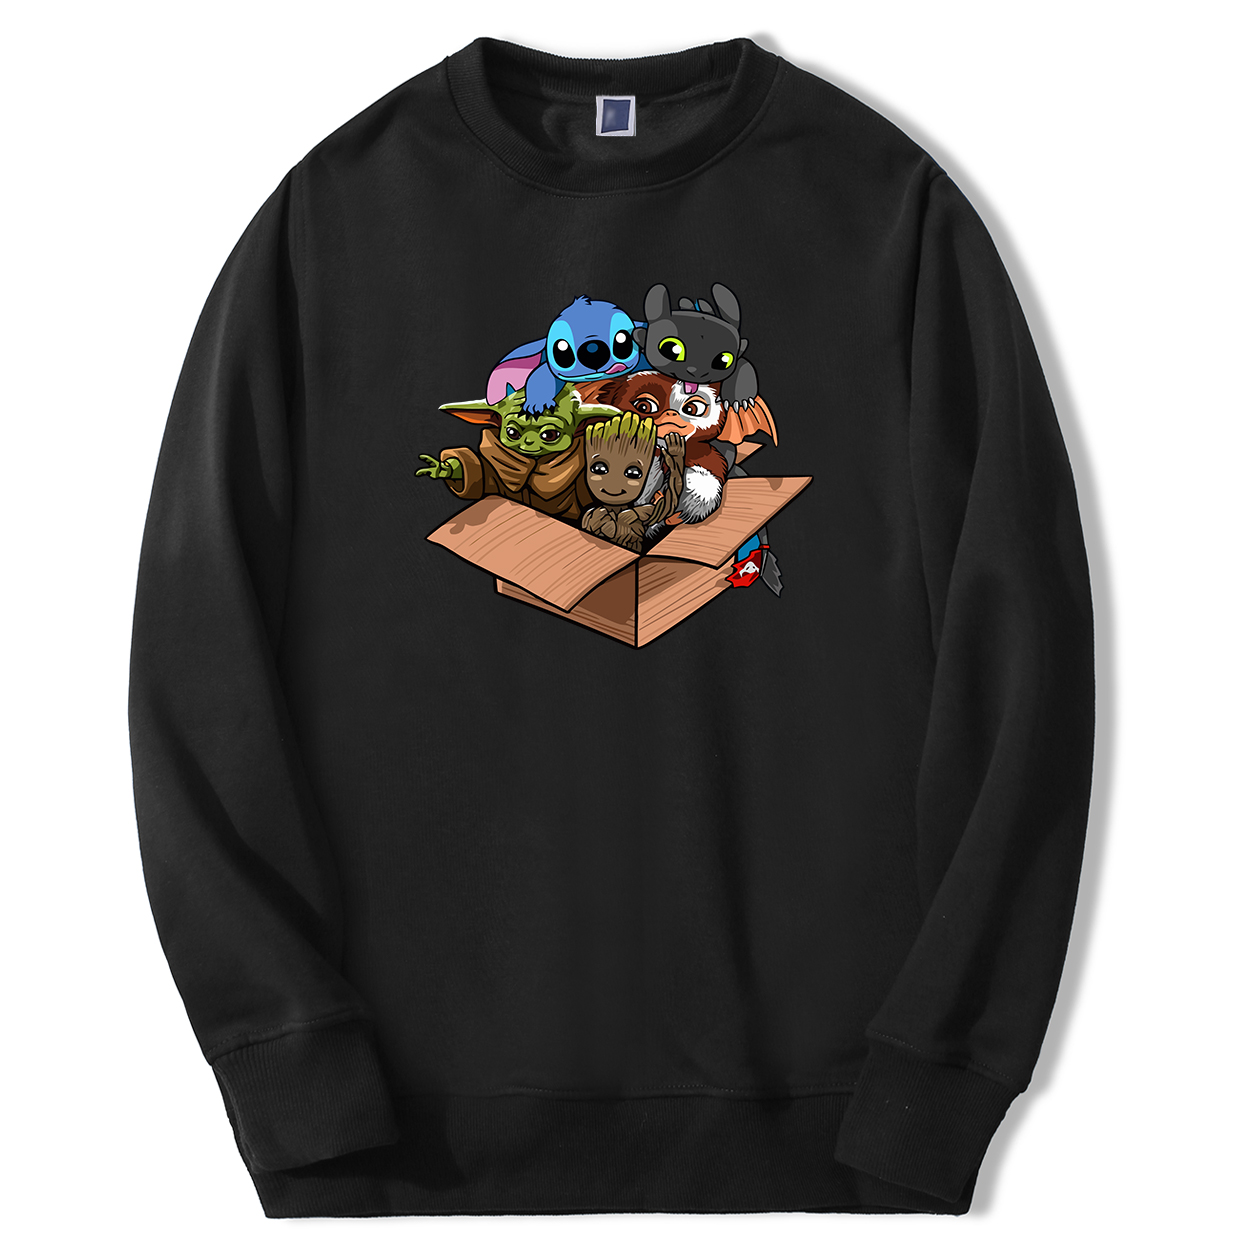 Kawaii Full Team Men's Groot Baby Yoda Stitch Sweatshirts Male Hoodies Sweatshirts 2020 Spring Autumn Fleece Sweatshirt Man Tops